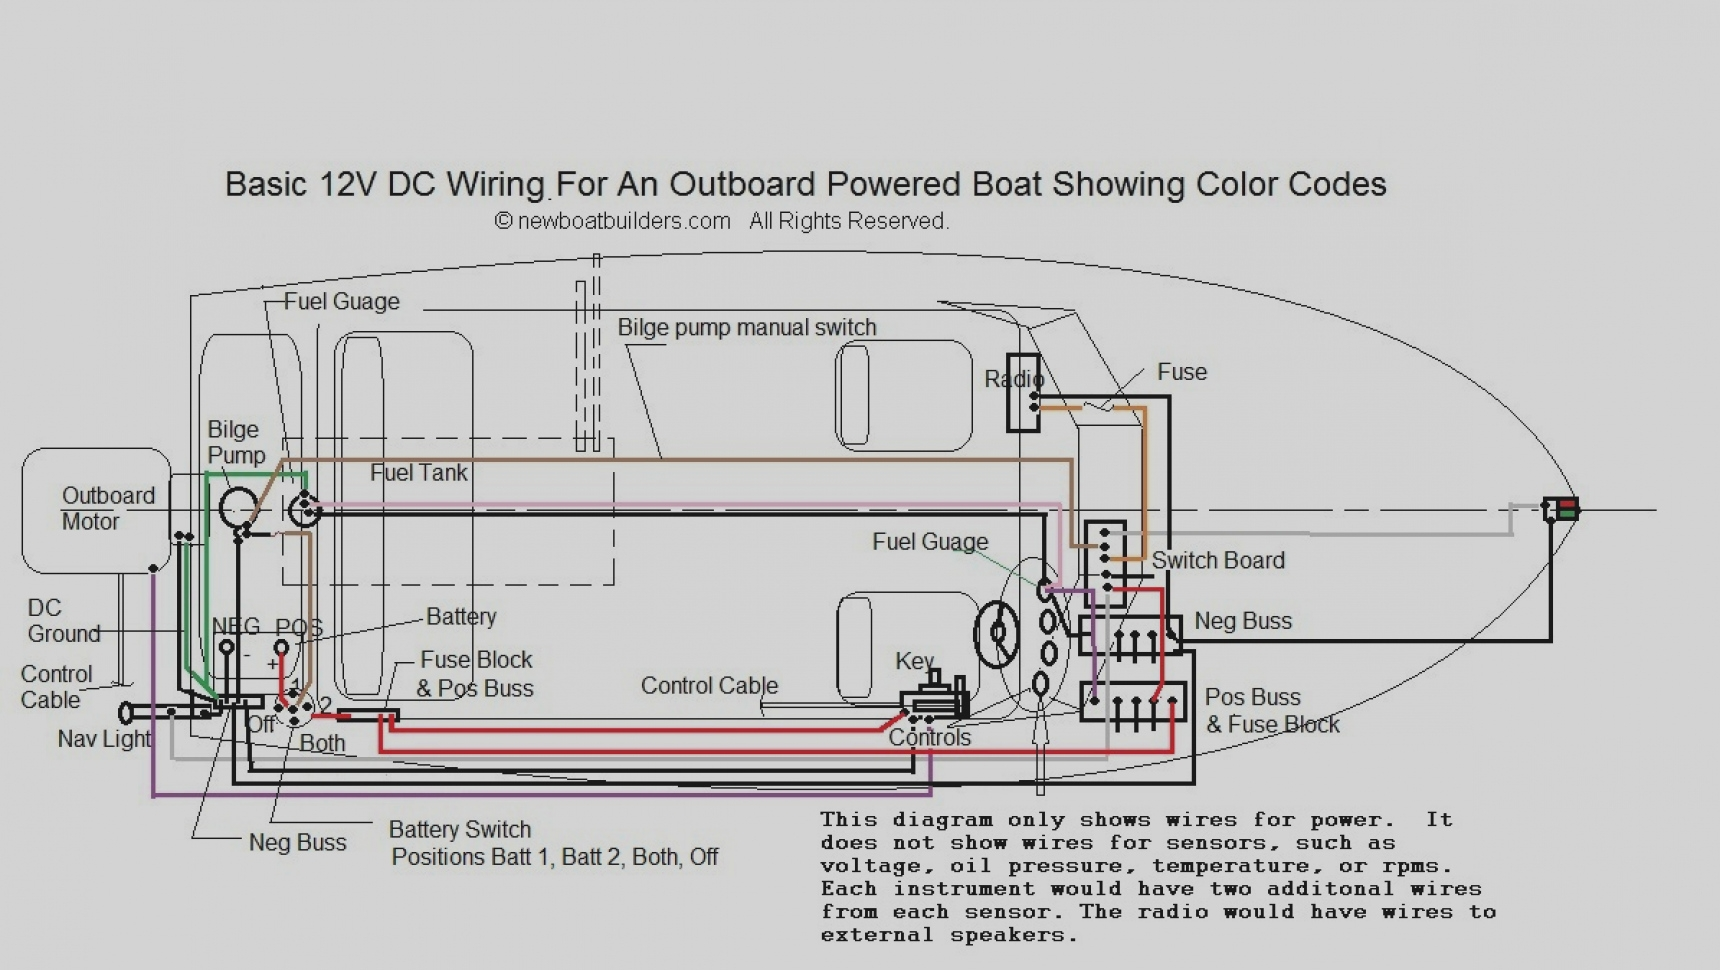 Wiring Diagram Bass Tracker Boat | Bass Tracker Boat Wiring Diagram Fuses |  | Wiring Diagram